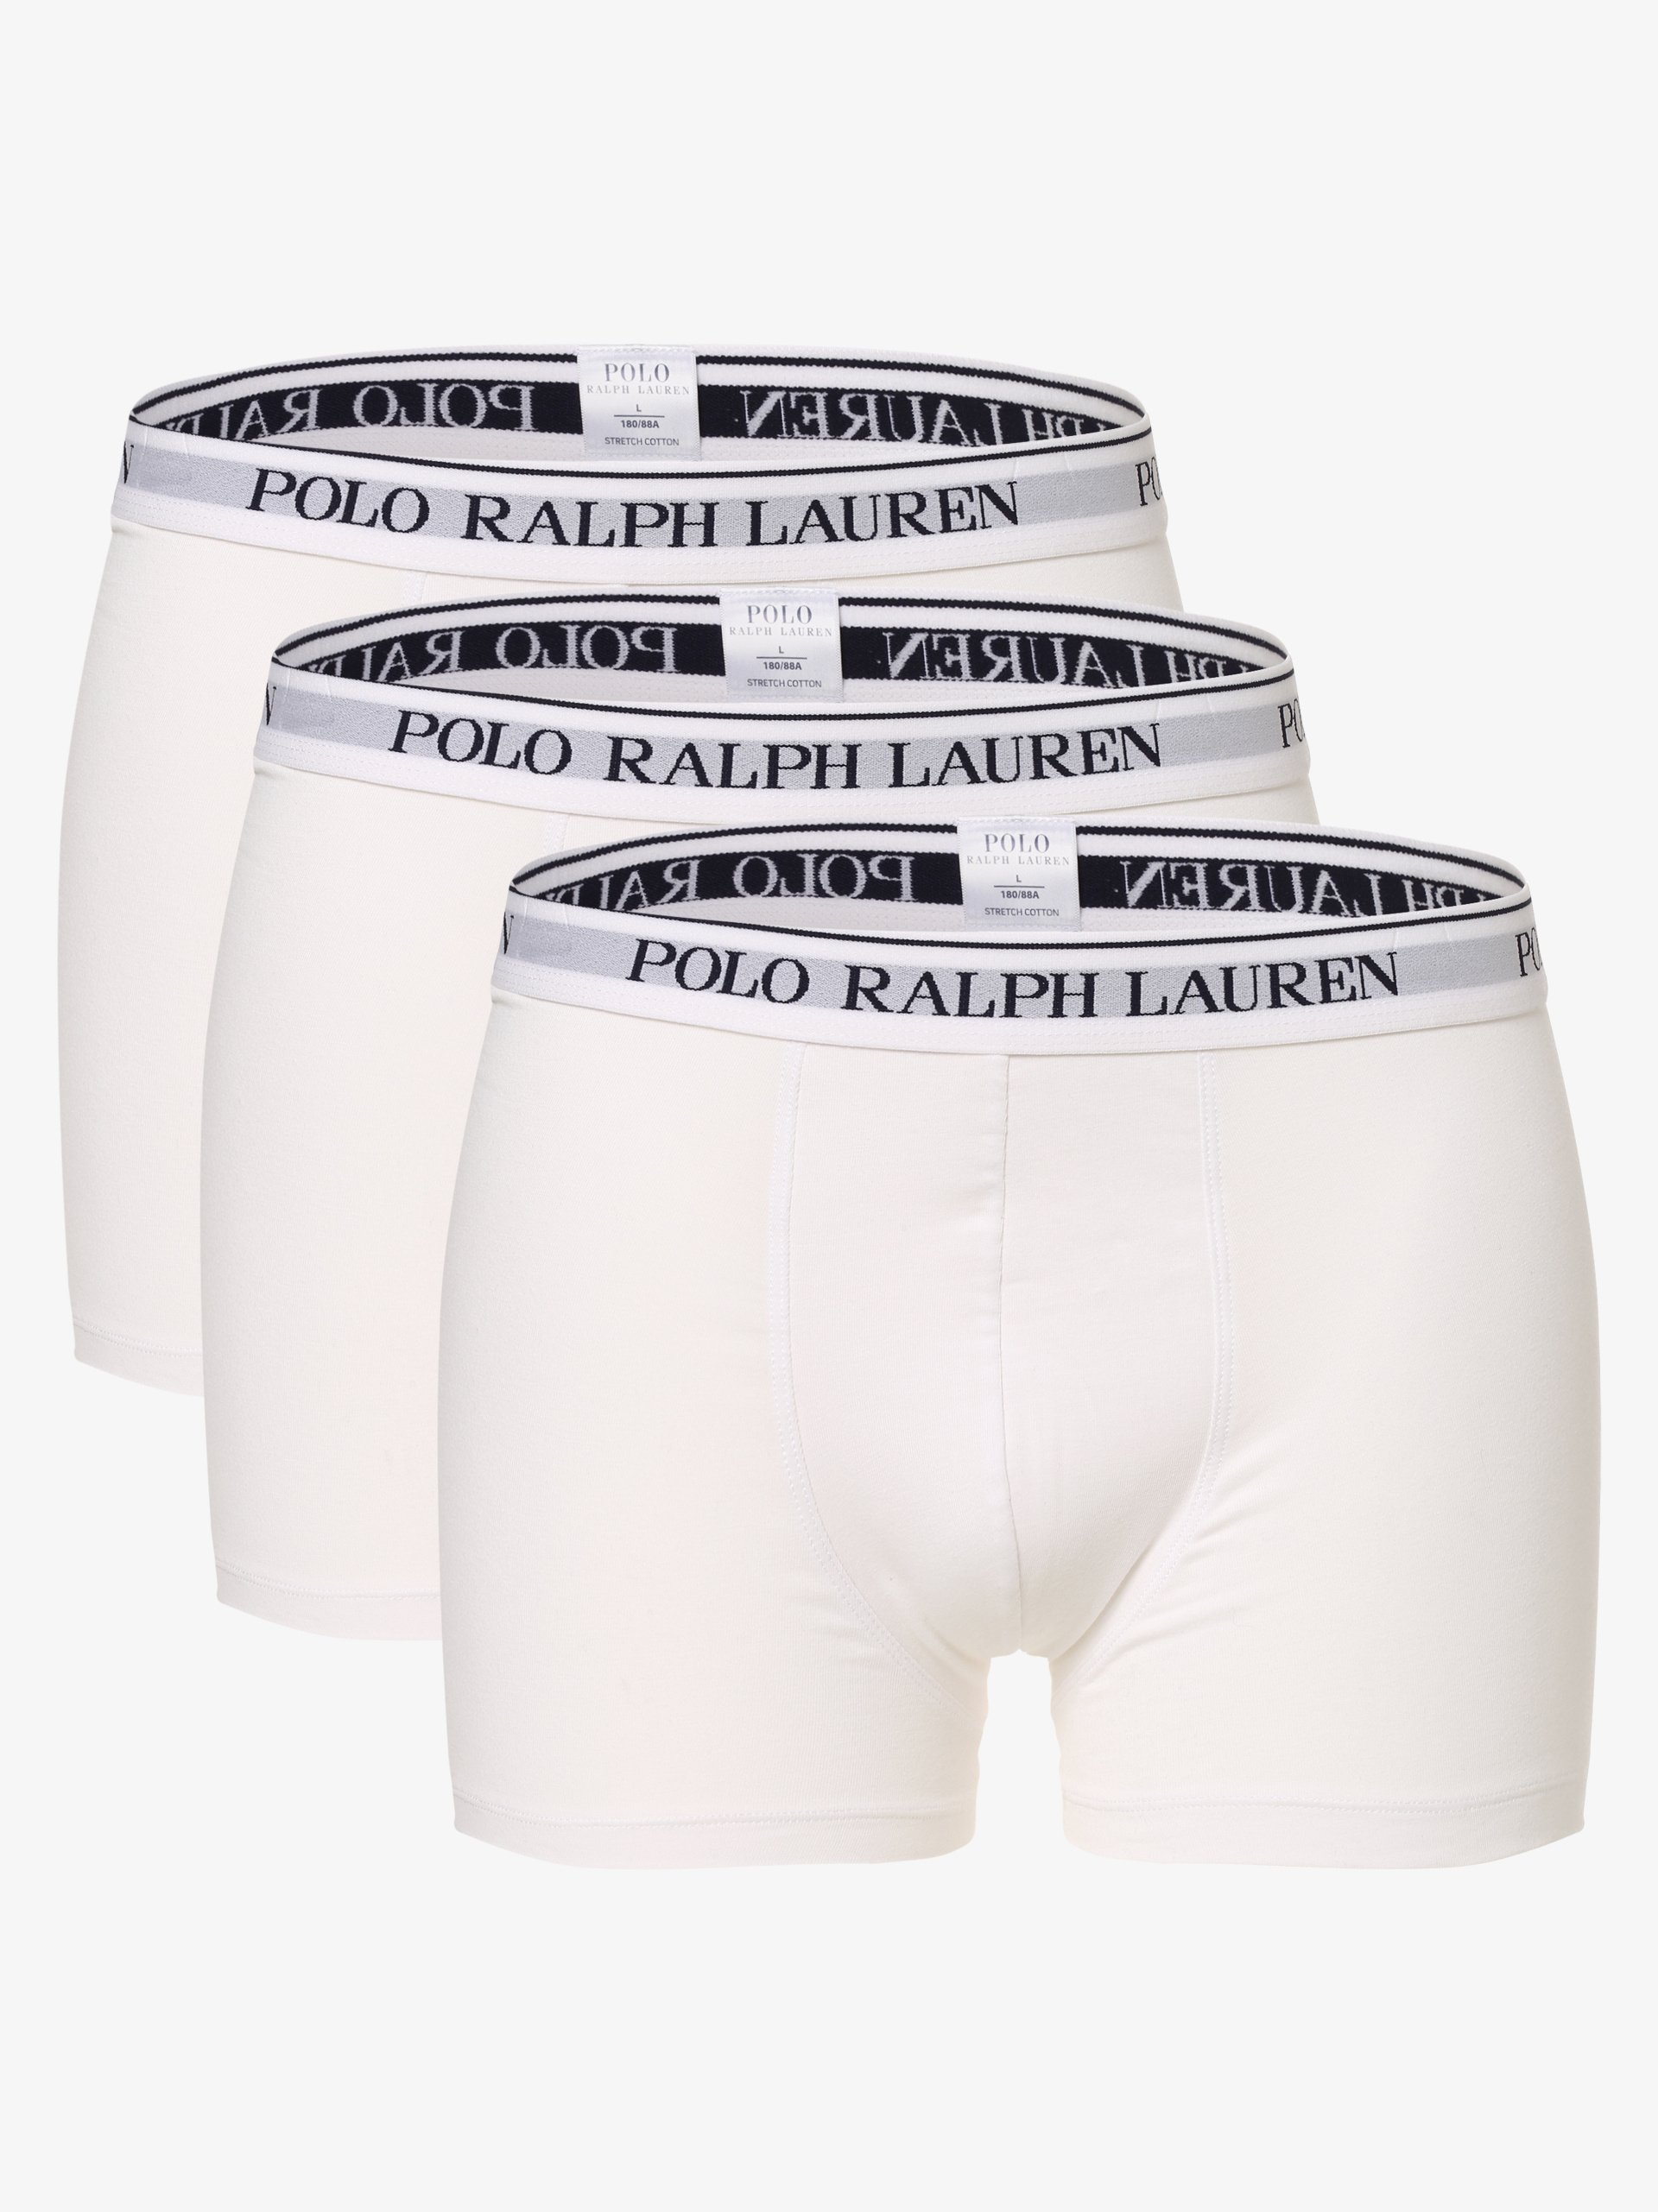 Polo Ralph Lauren Herren Pants im 3er-Pack